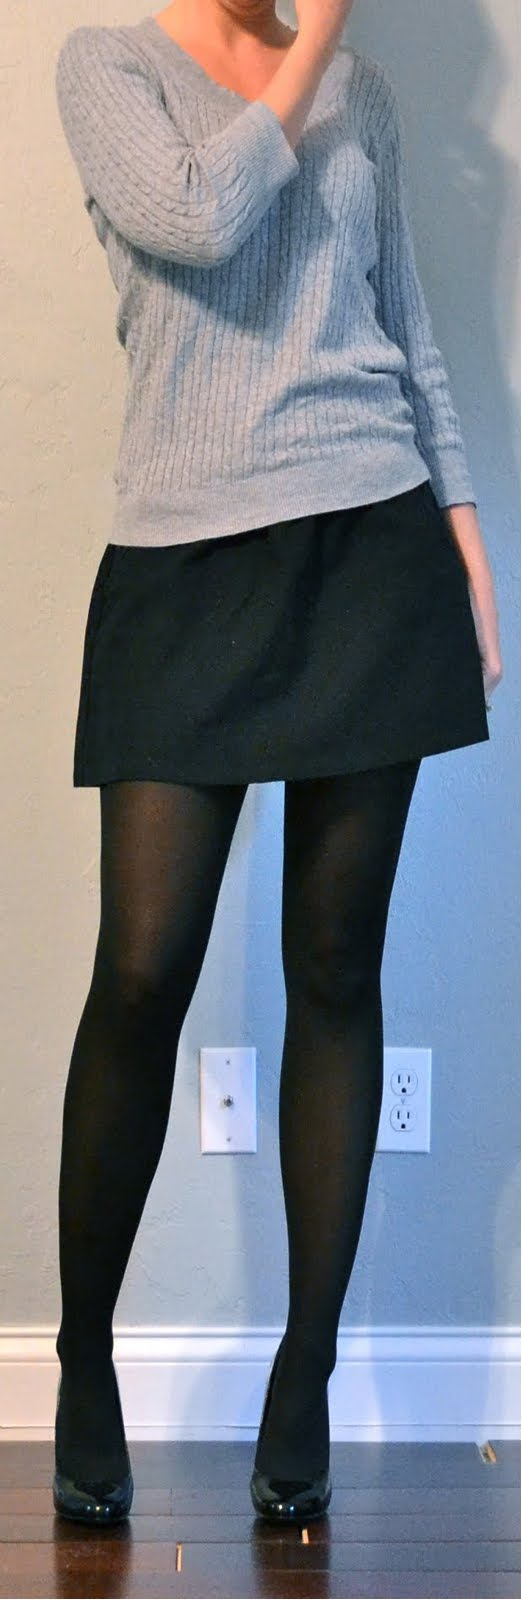 Black Skirt Tights 120